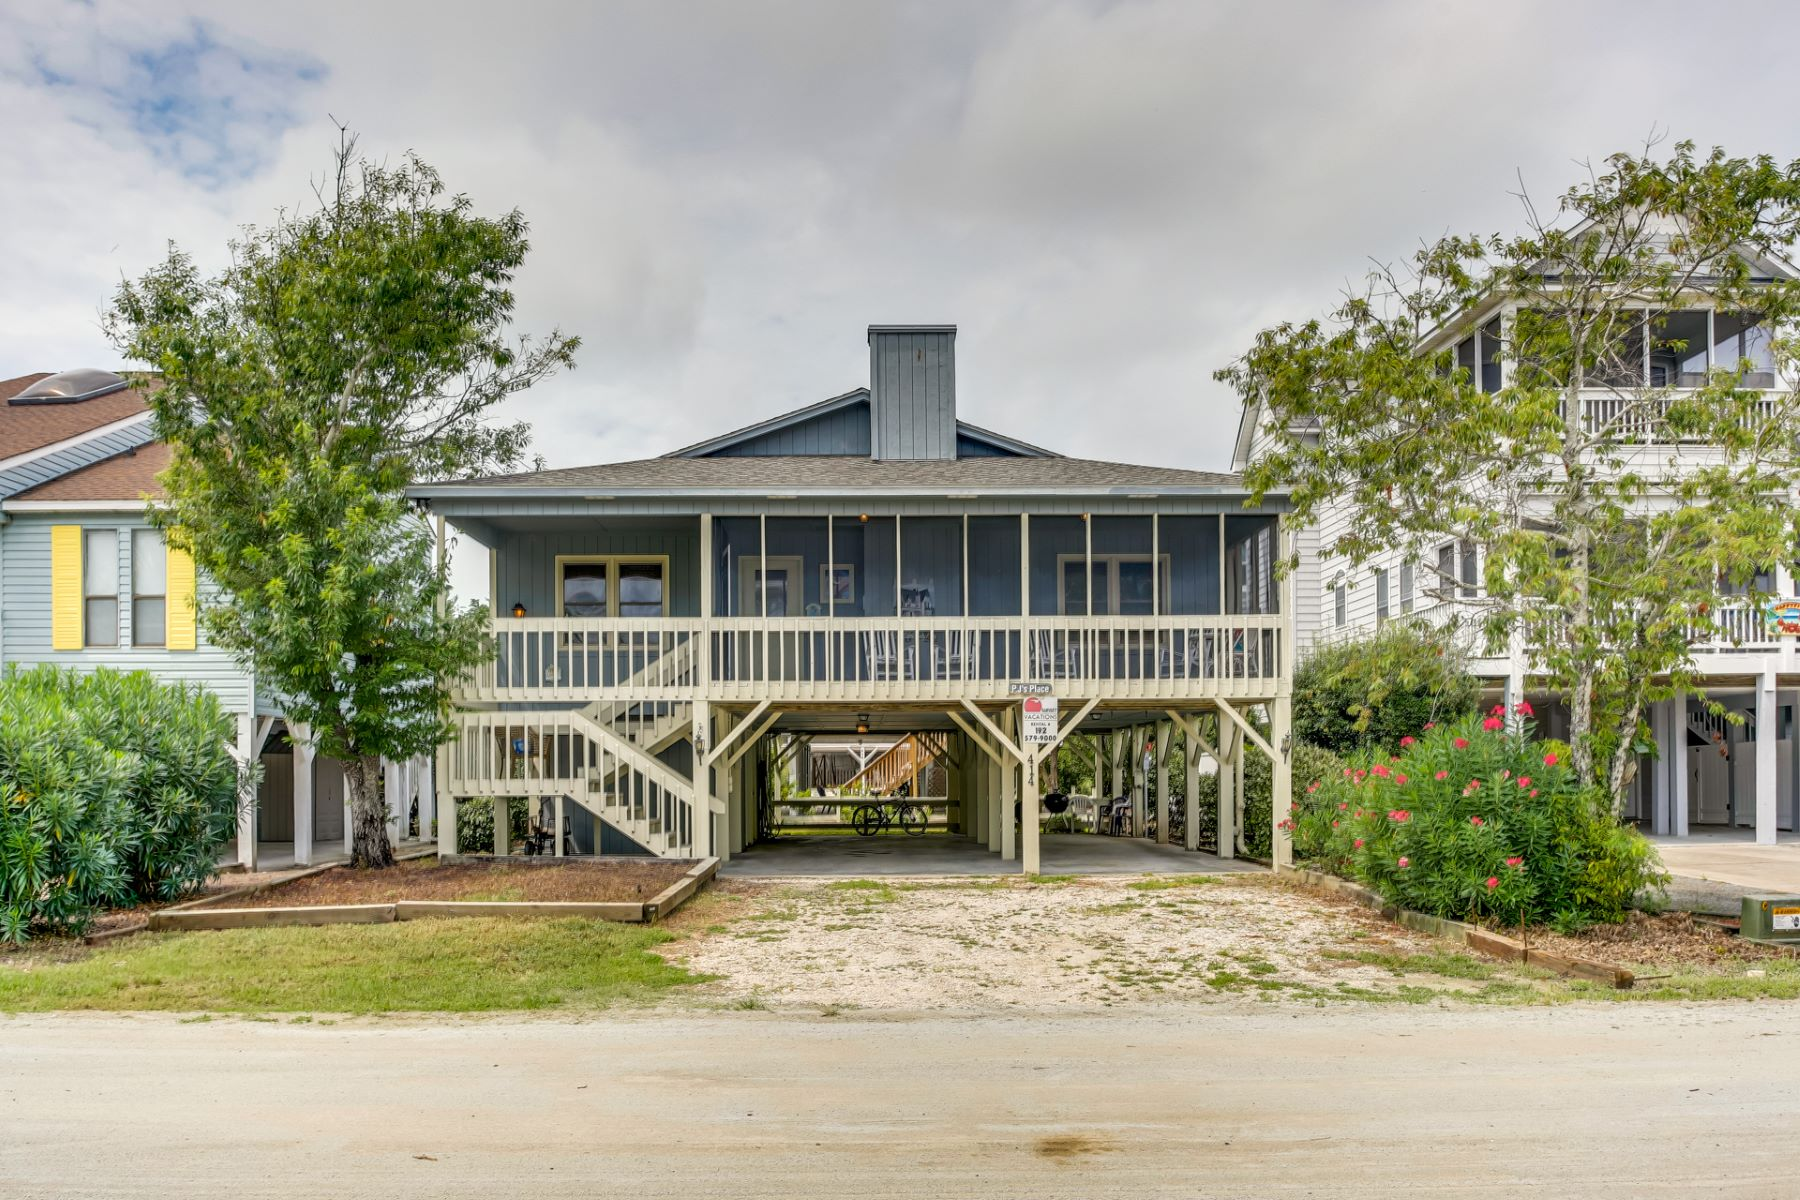 Single Family Homes for Active at Beautiful Sunset Beach Home 414 2nd Street Sunset Beach, North Carolina 28468 United States